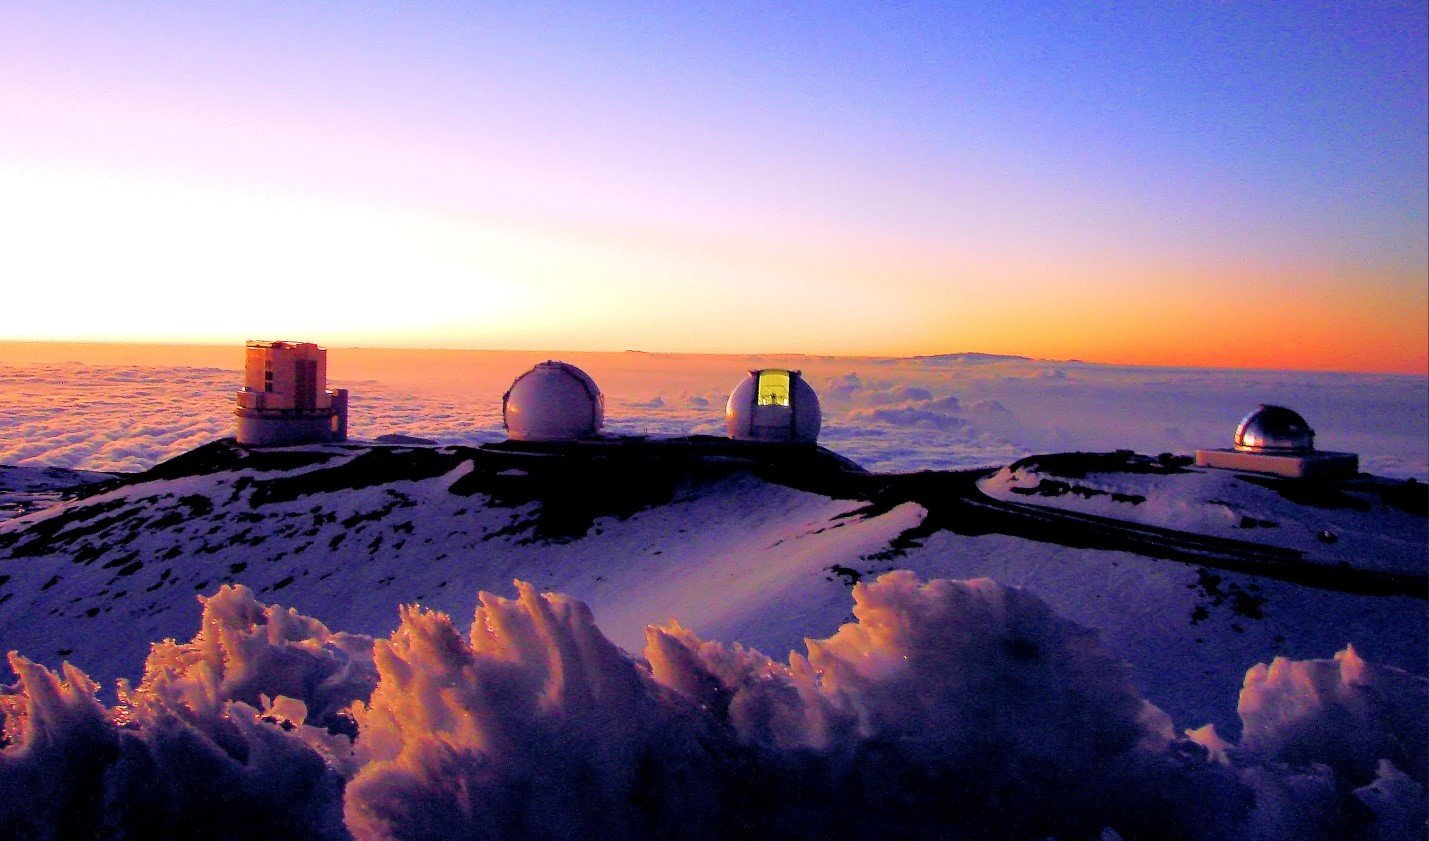 Sunset on Mauna Kea Volcano